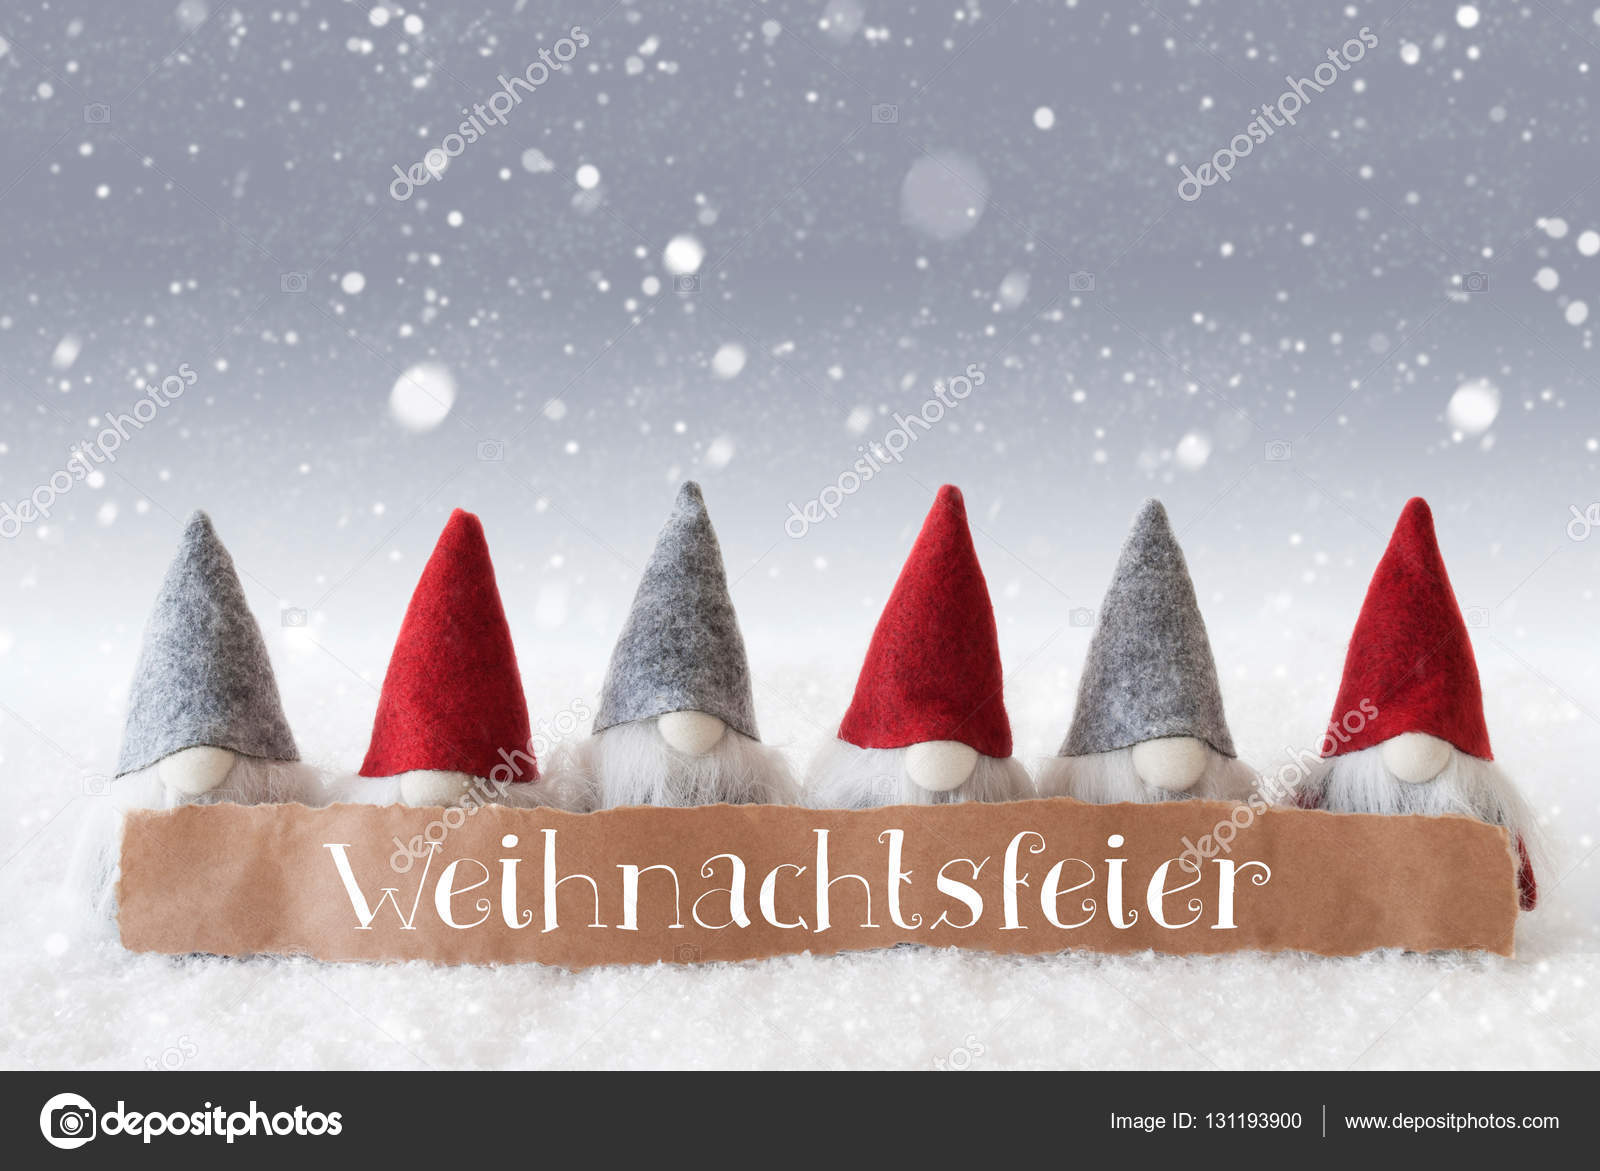 Save The Date Weihnachtsfeier.Gnomes Silver Background Snowflakes Weihnachtsfeier Means